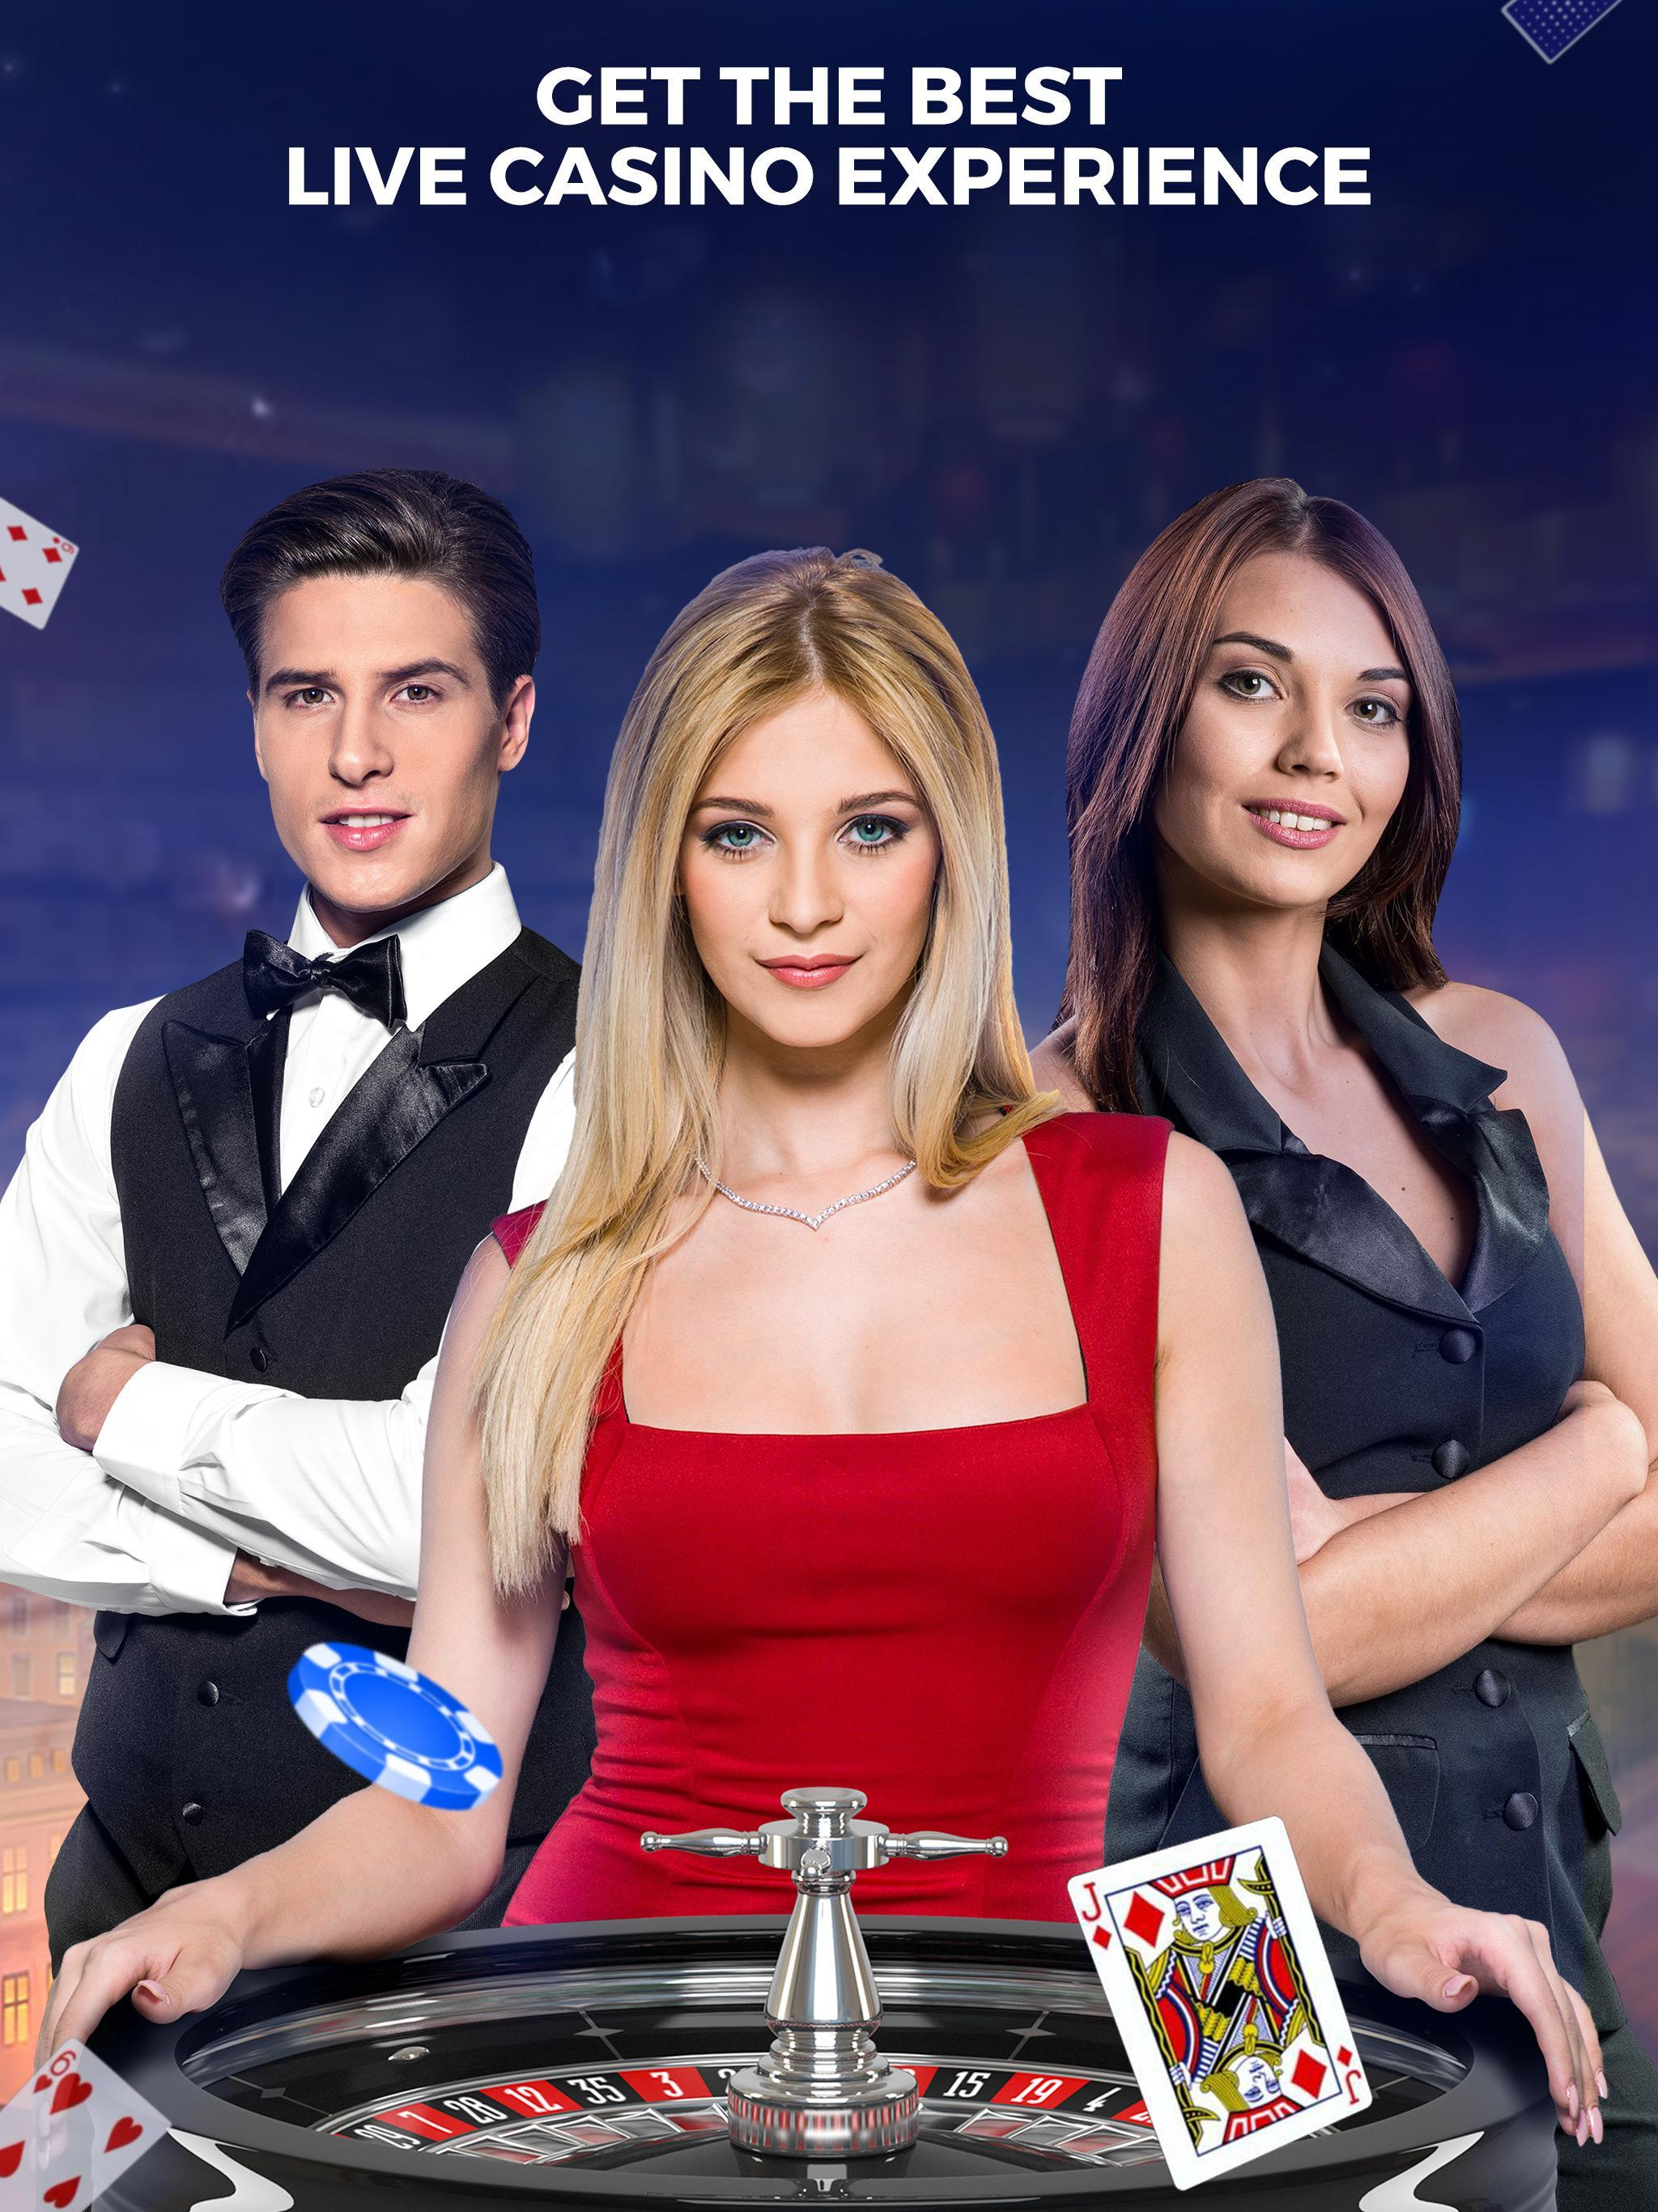 Top online casino canada for real money